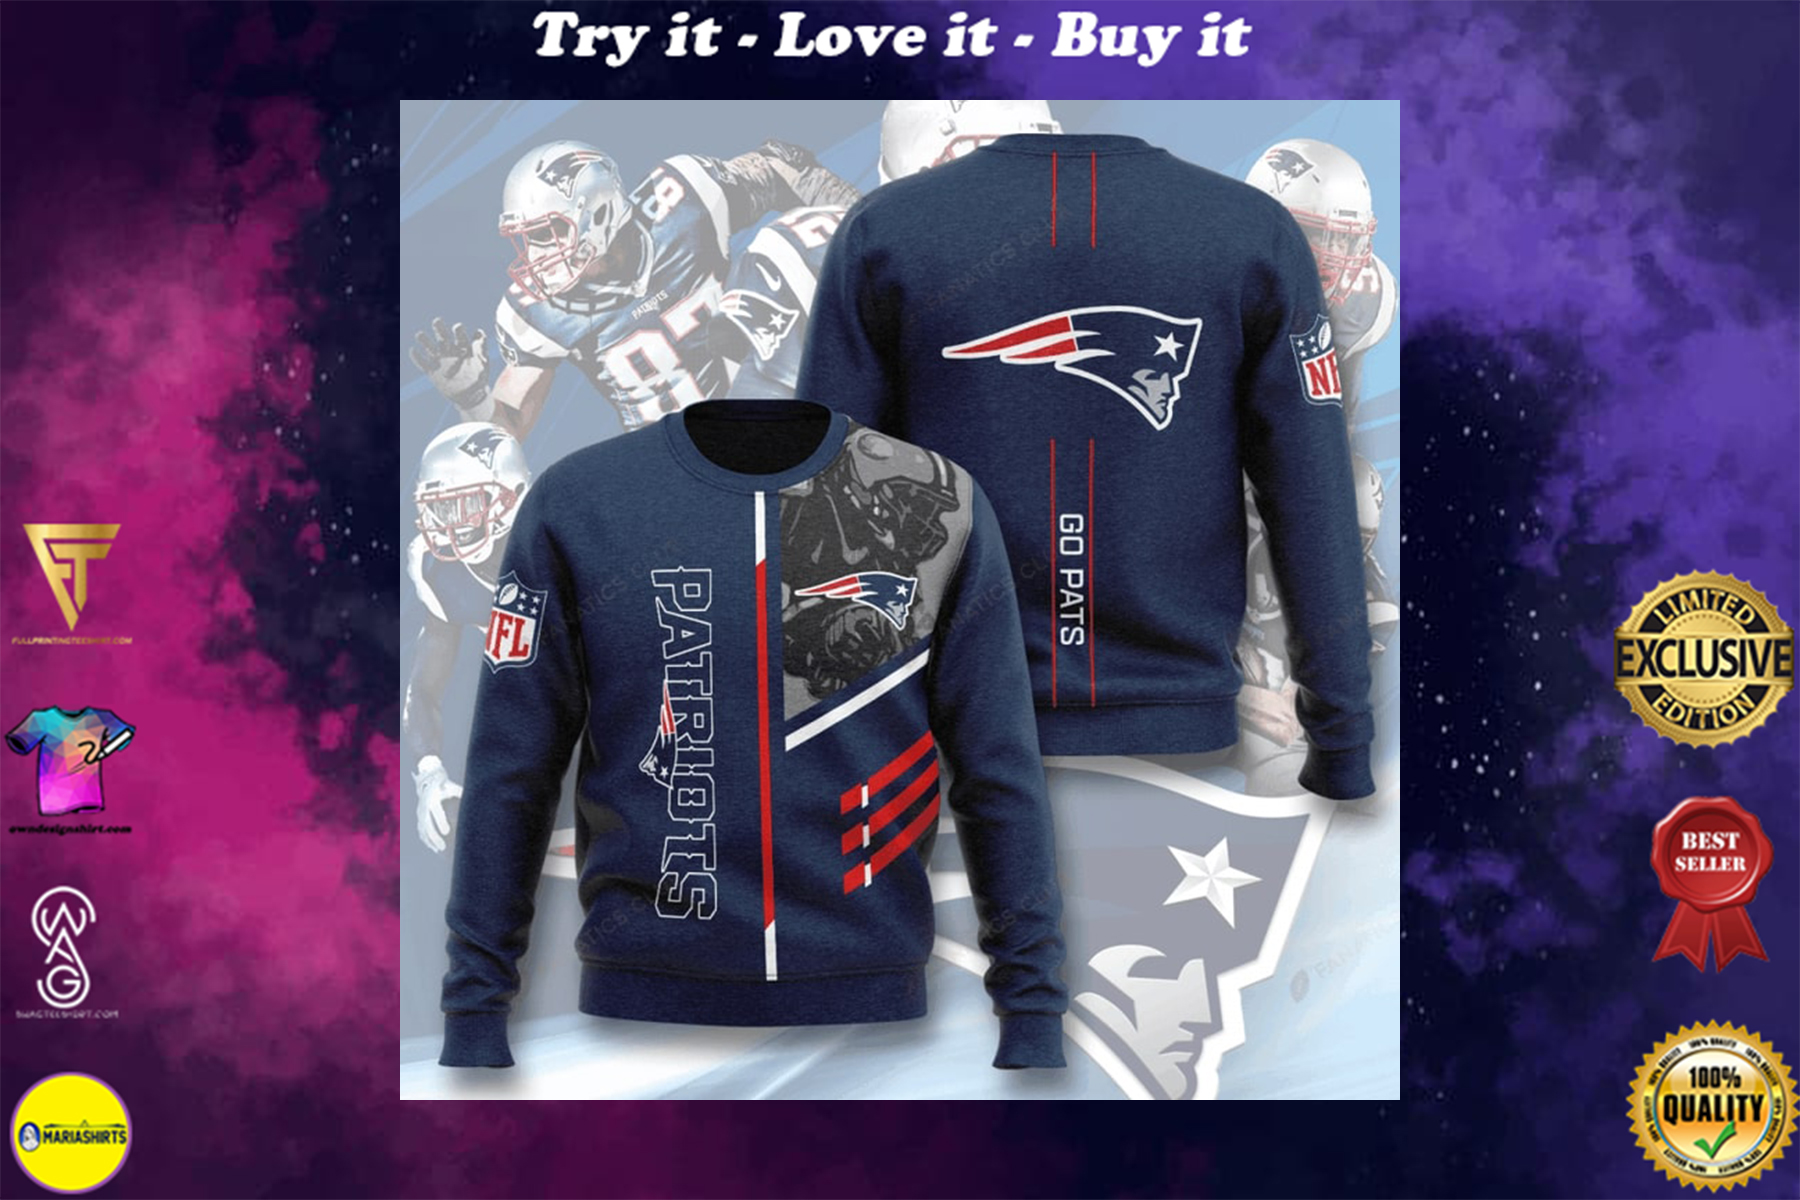 [special edition] national football league new england patriots go pats full printing ugly sweater - maria